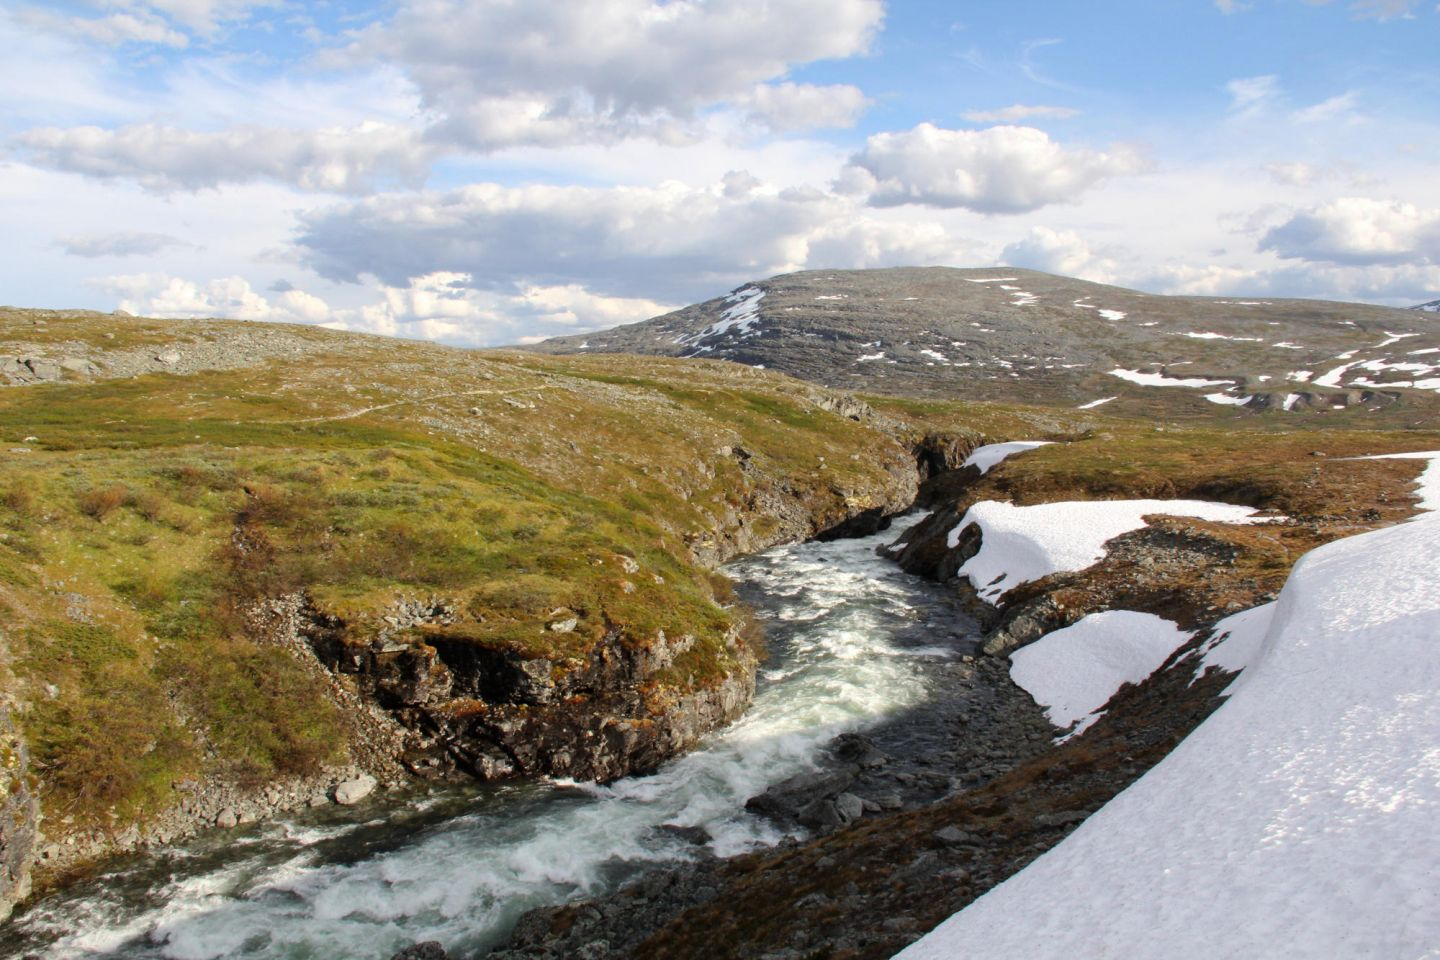 Arctic river with snow